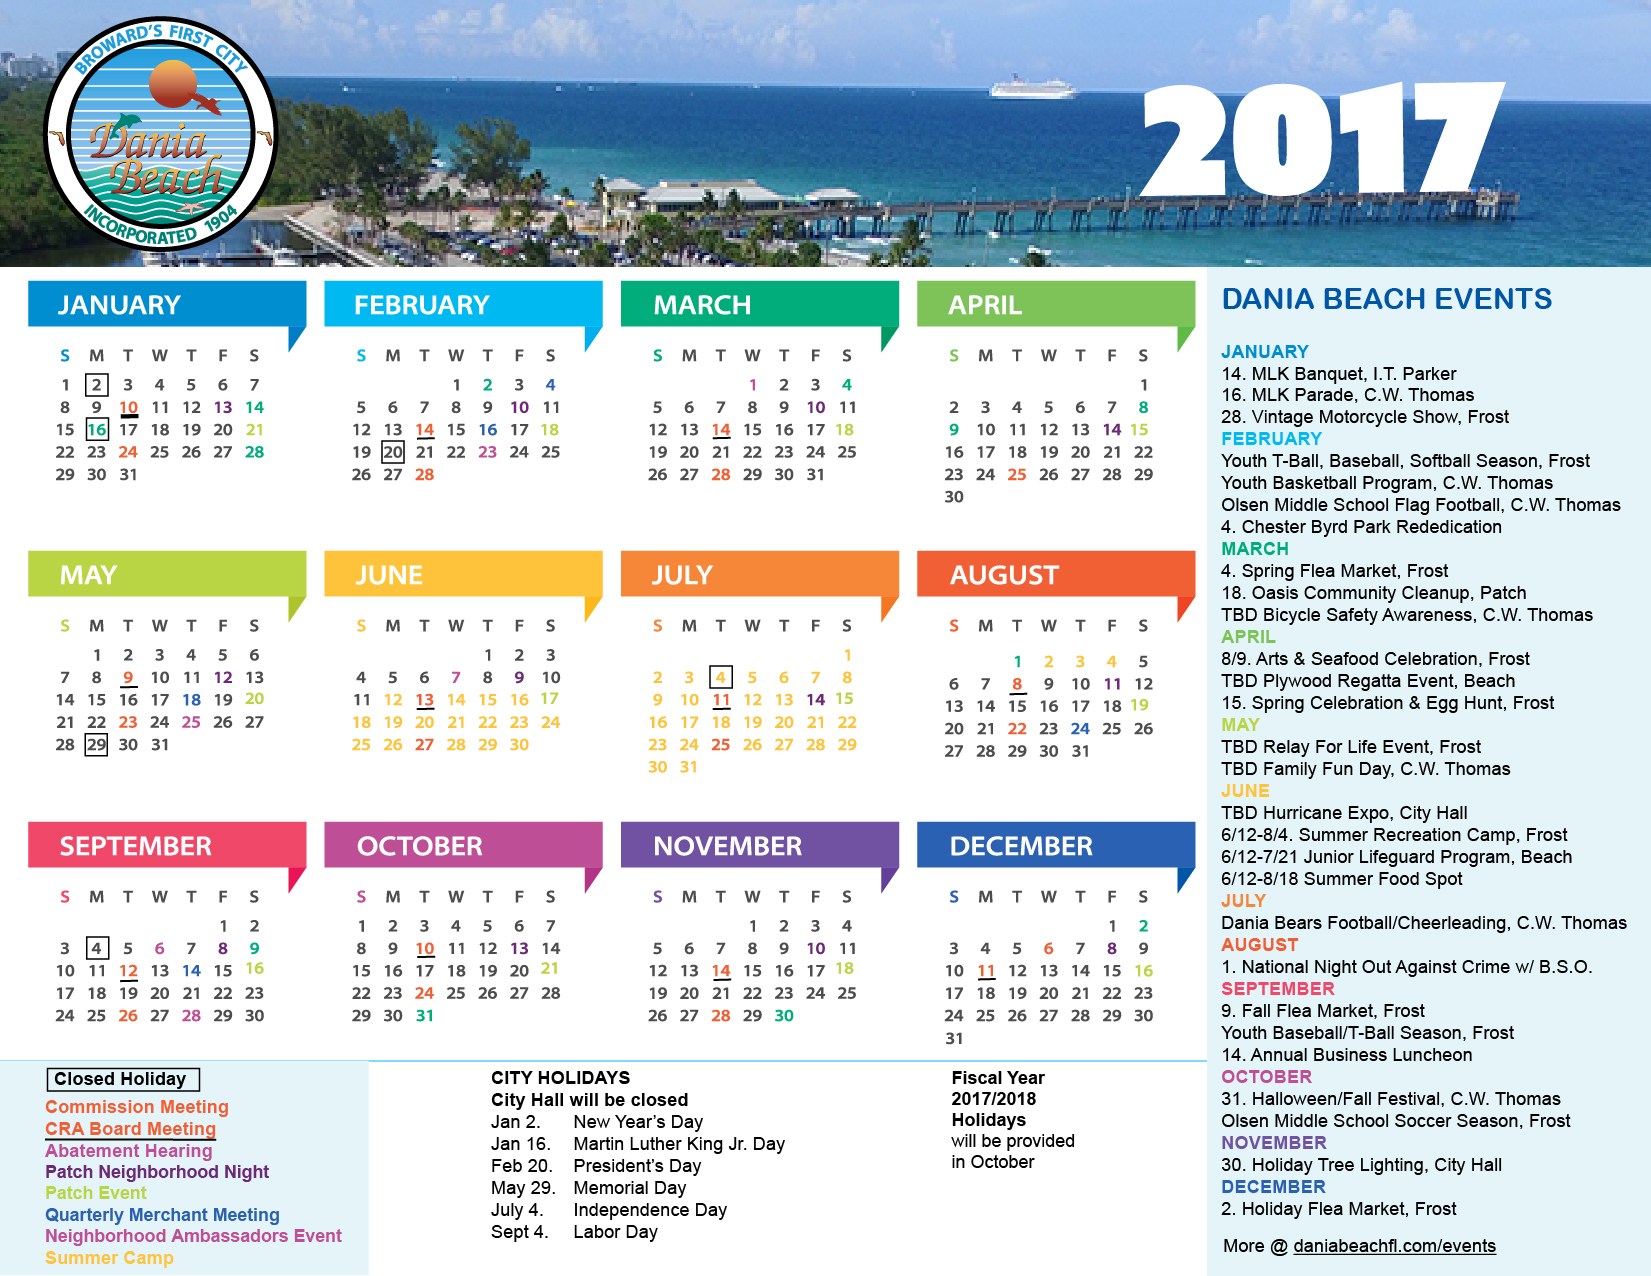 dania beach events calendar